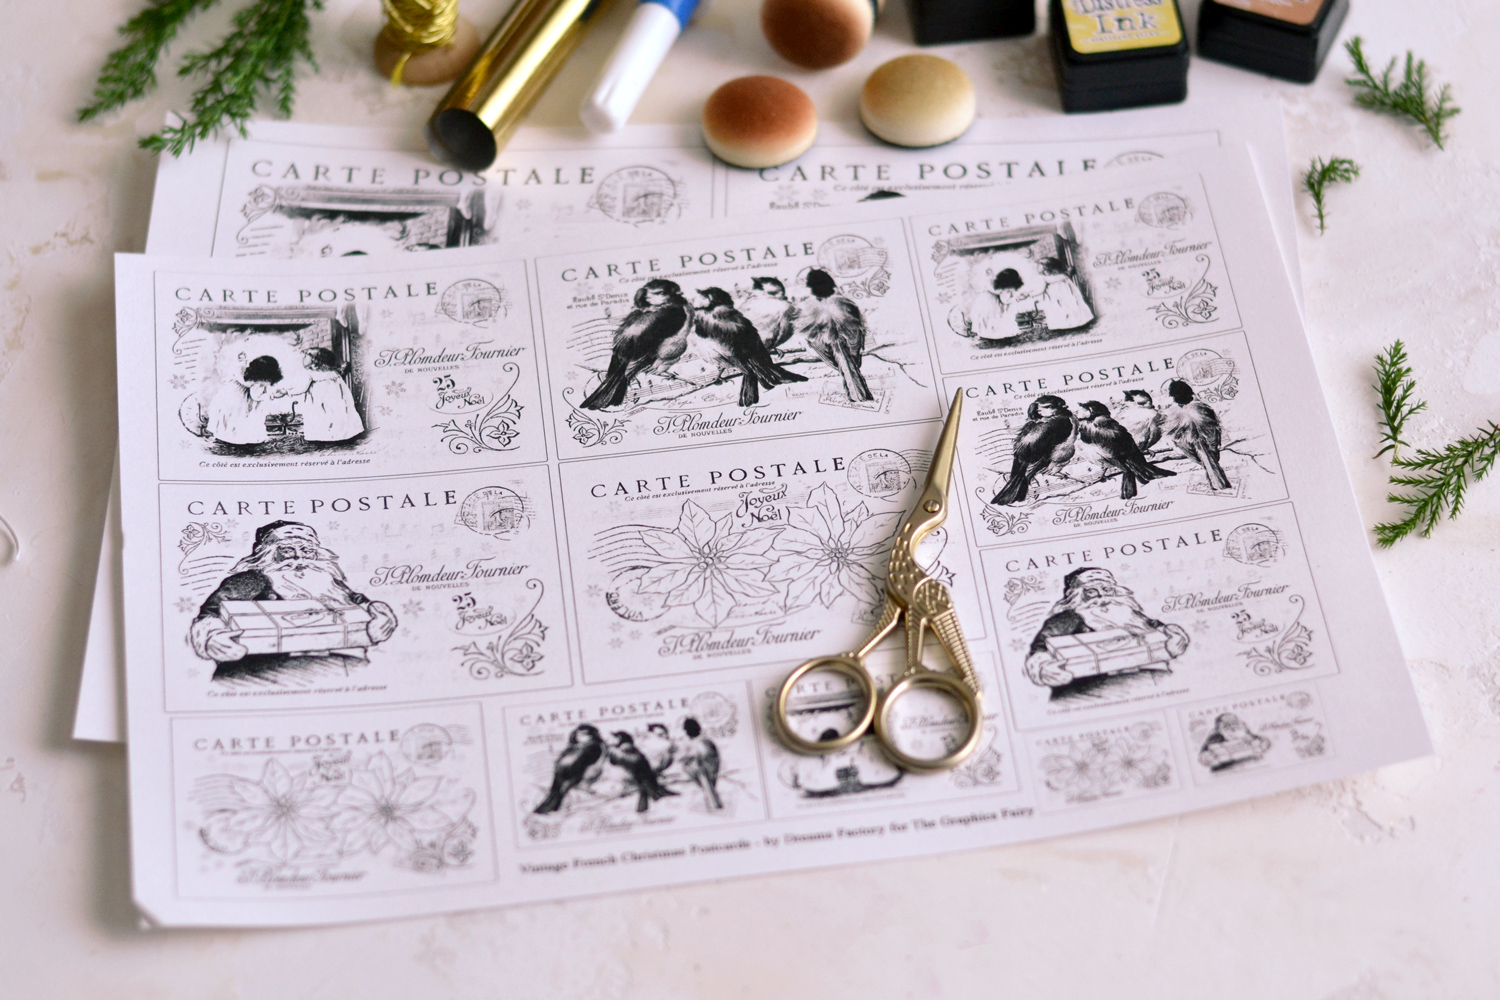 All the supplies needed to create the Gold foil Christmas Postcards